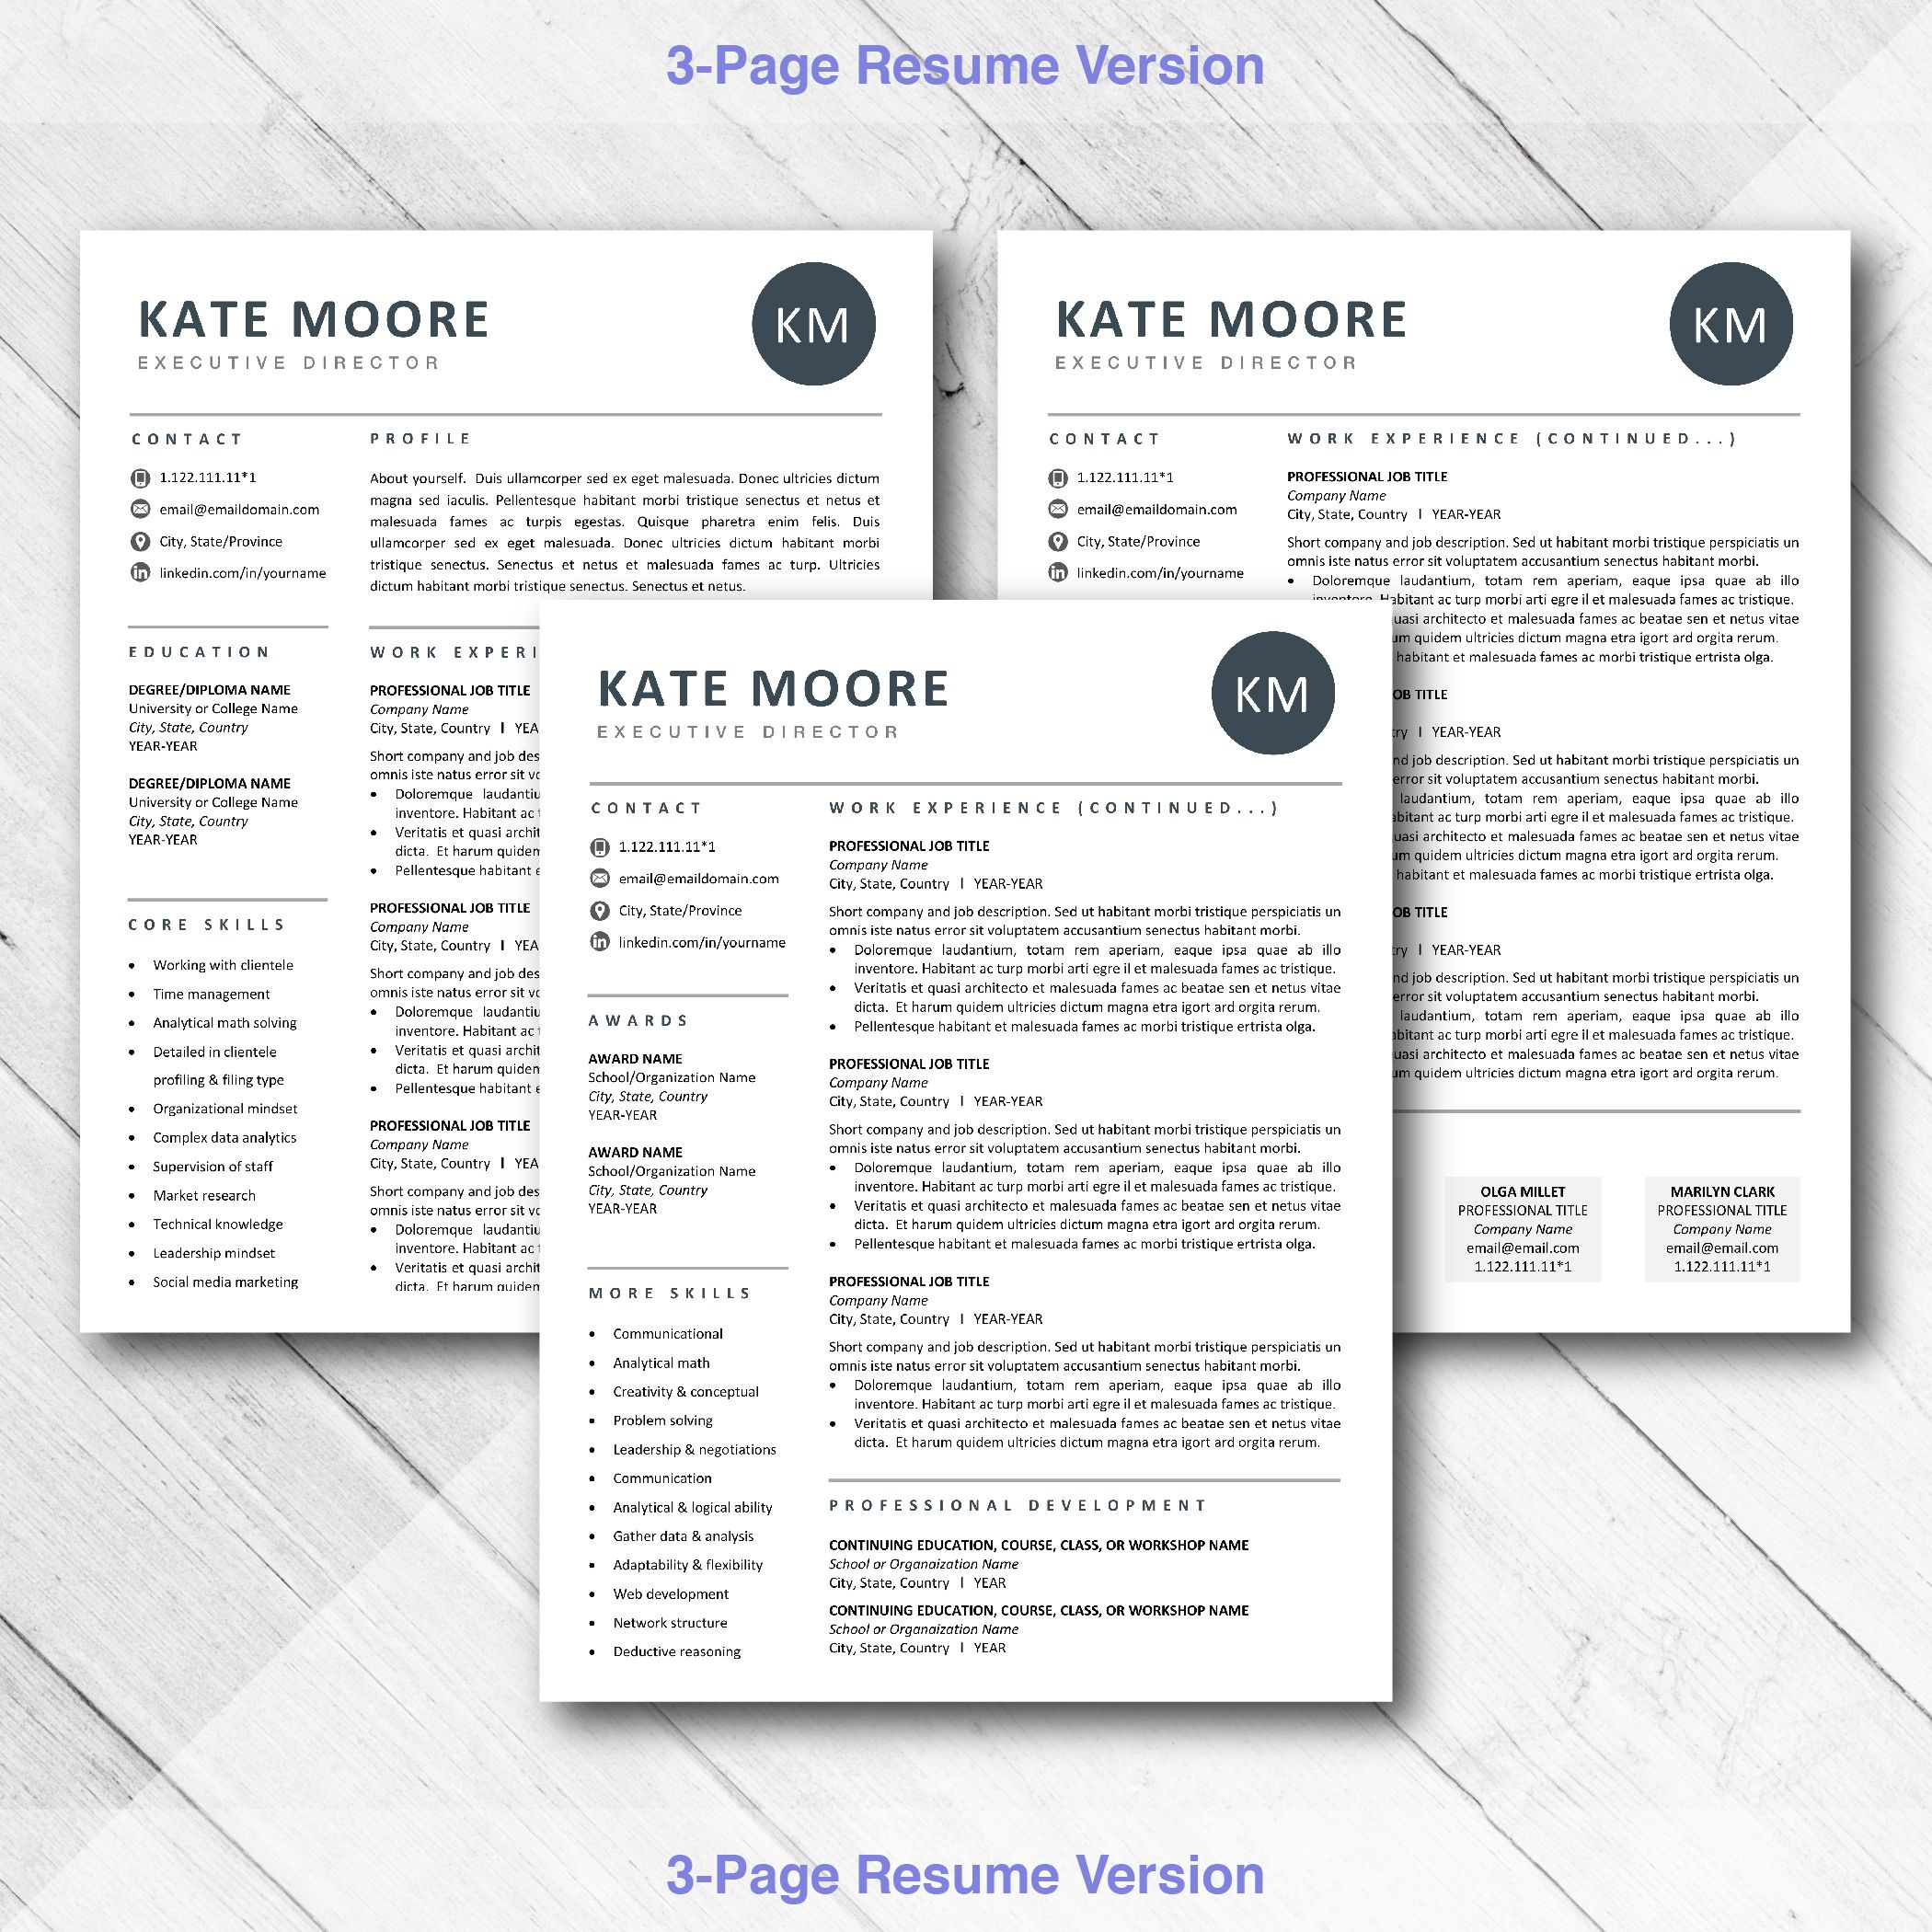 Pin on The Art of Resume